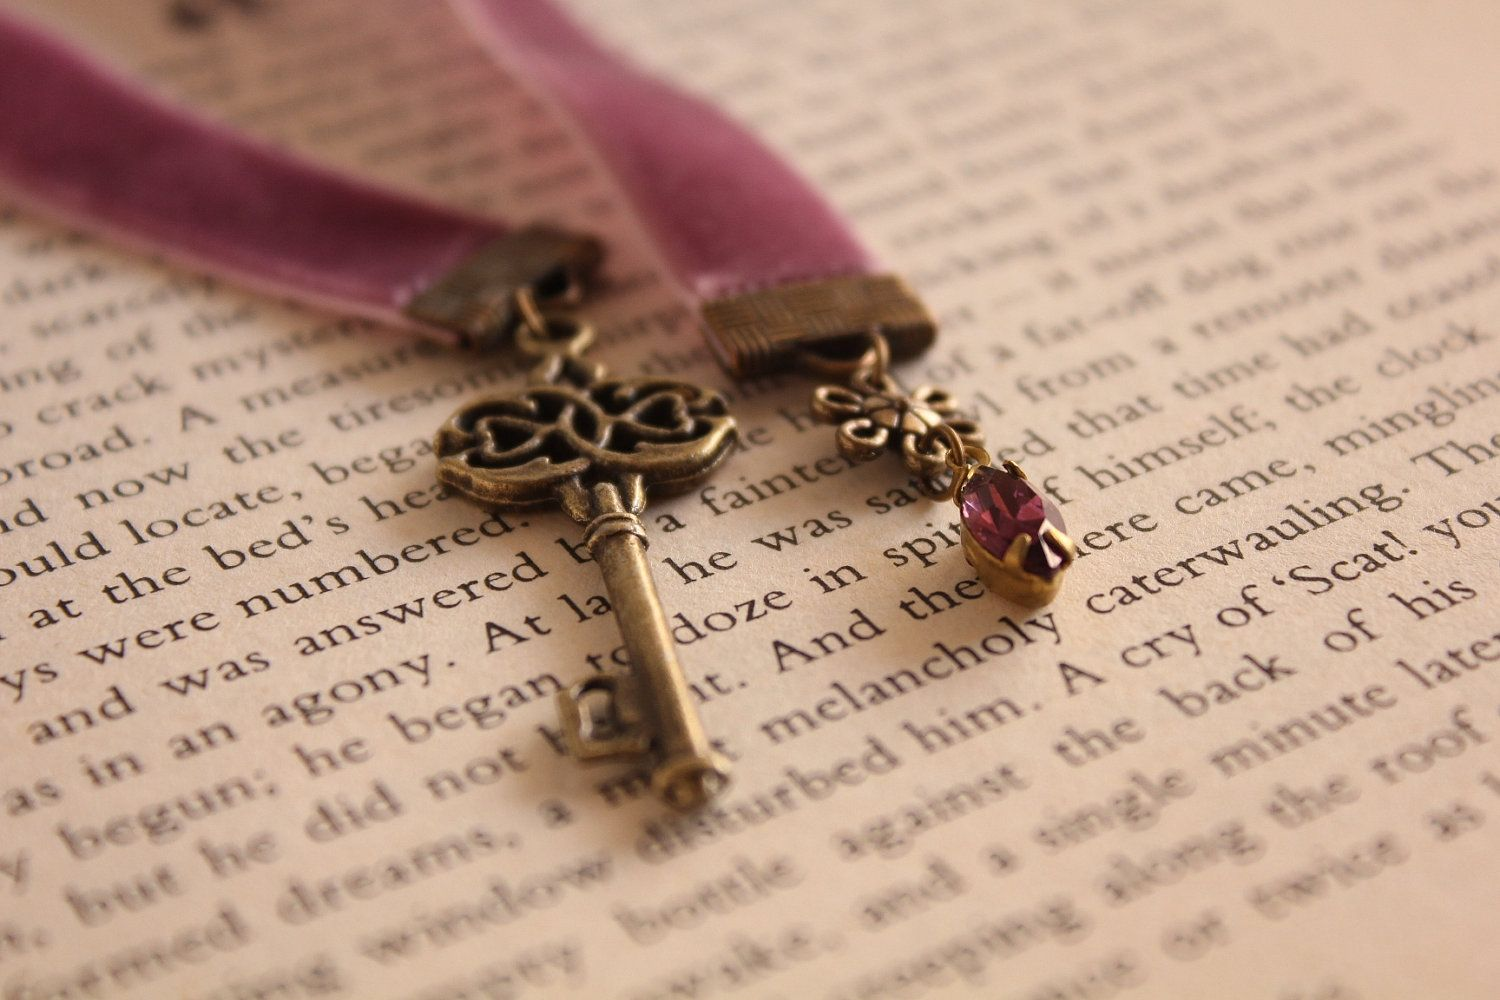 Ribbon Bookmark Book Thong - Vintage Jewel - The Old Key and The Jewel - Purple